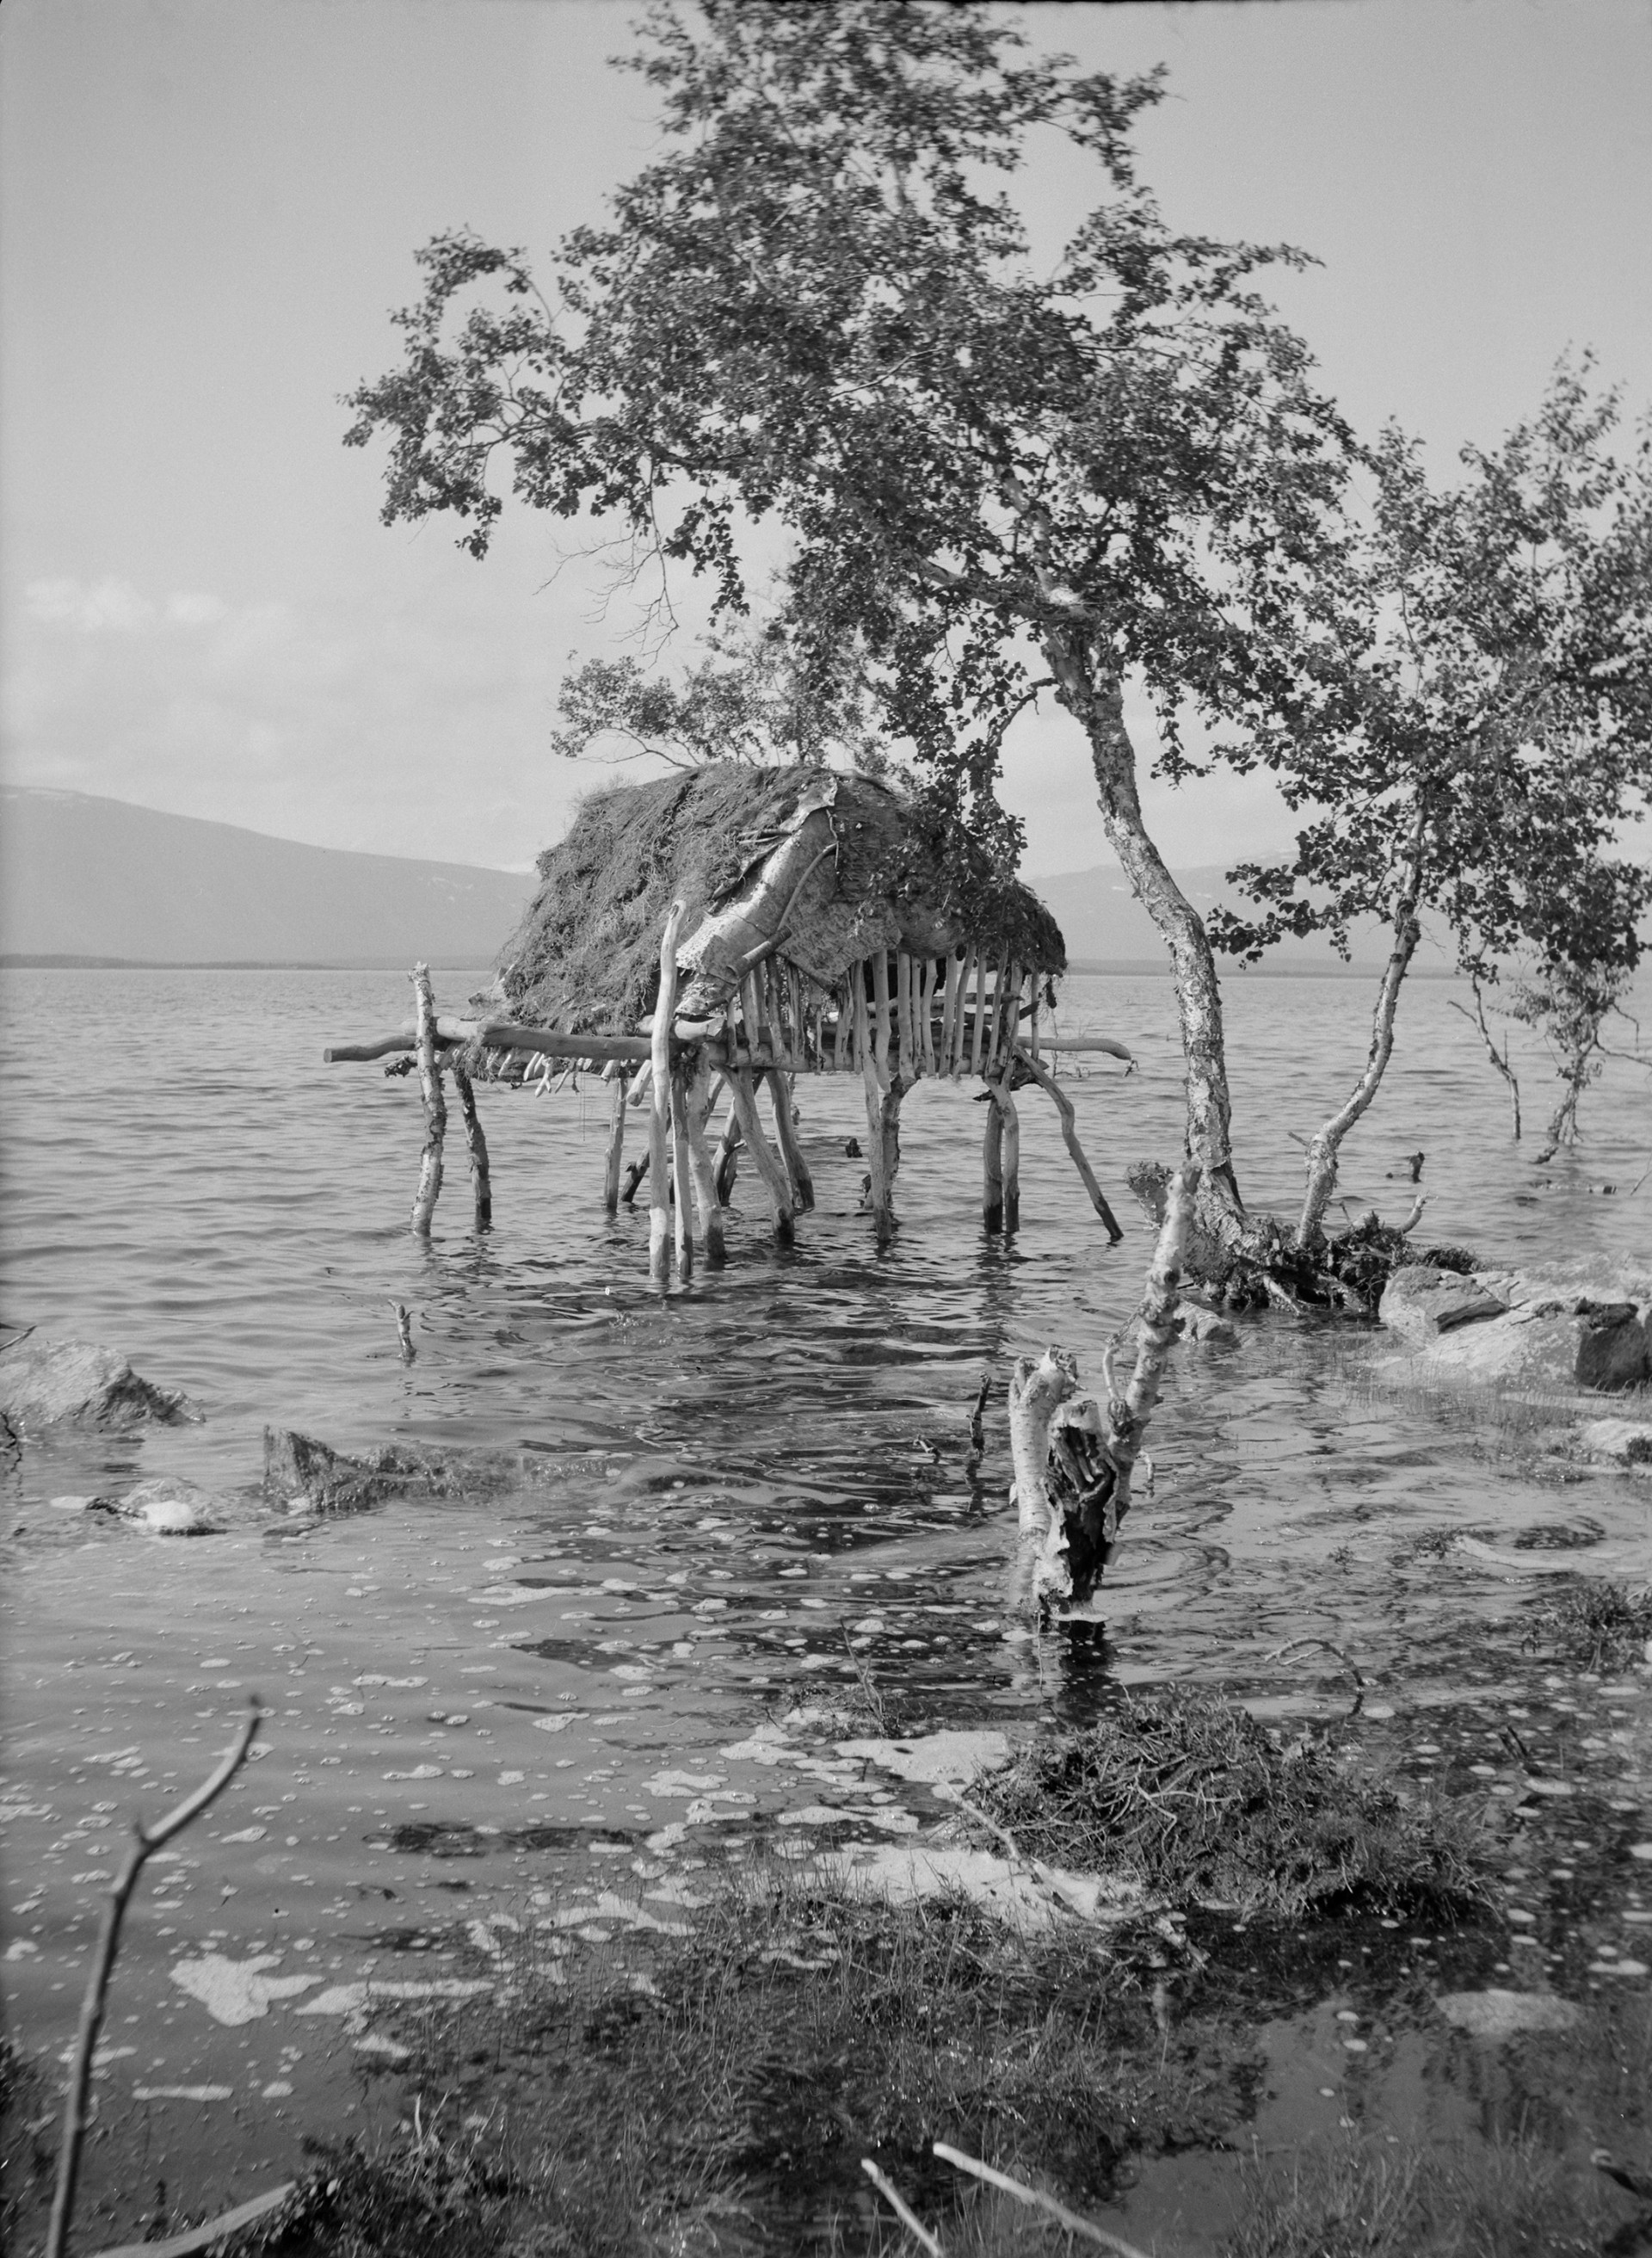 Flooded hut site with a luovve (storage hut) still standing, Ritsemjokk, Sörkaitums herding cooperative. 1939. Photo: Ernst Manker/Nordiska museet